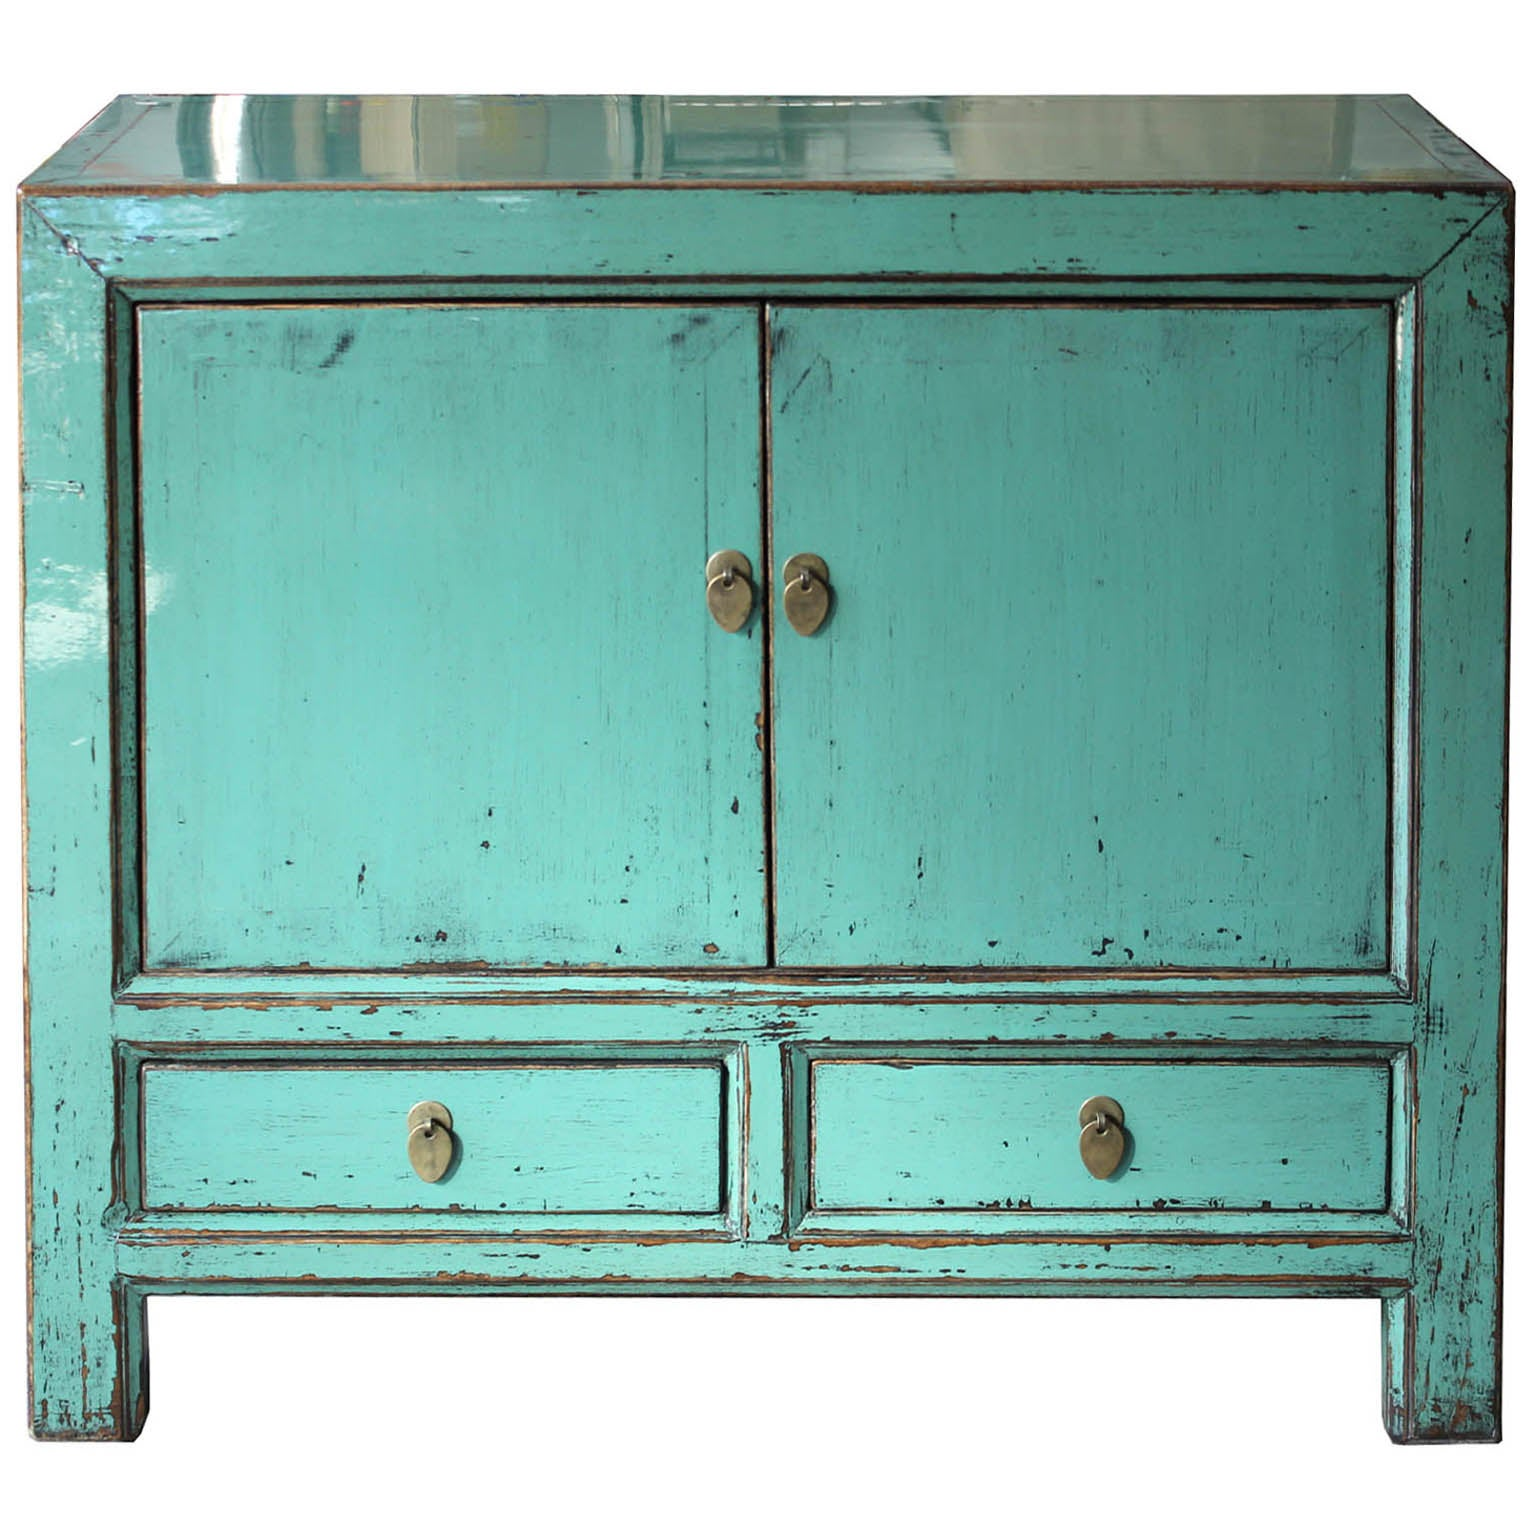 New Antique Japanese Clothing Chest at 1stdibs YY69